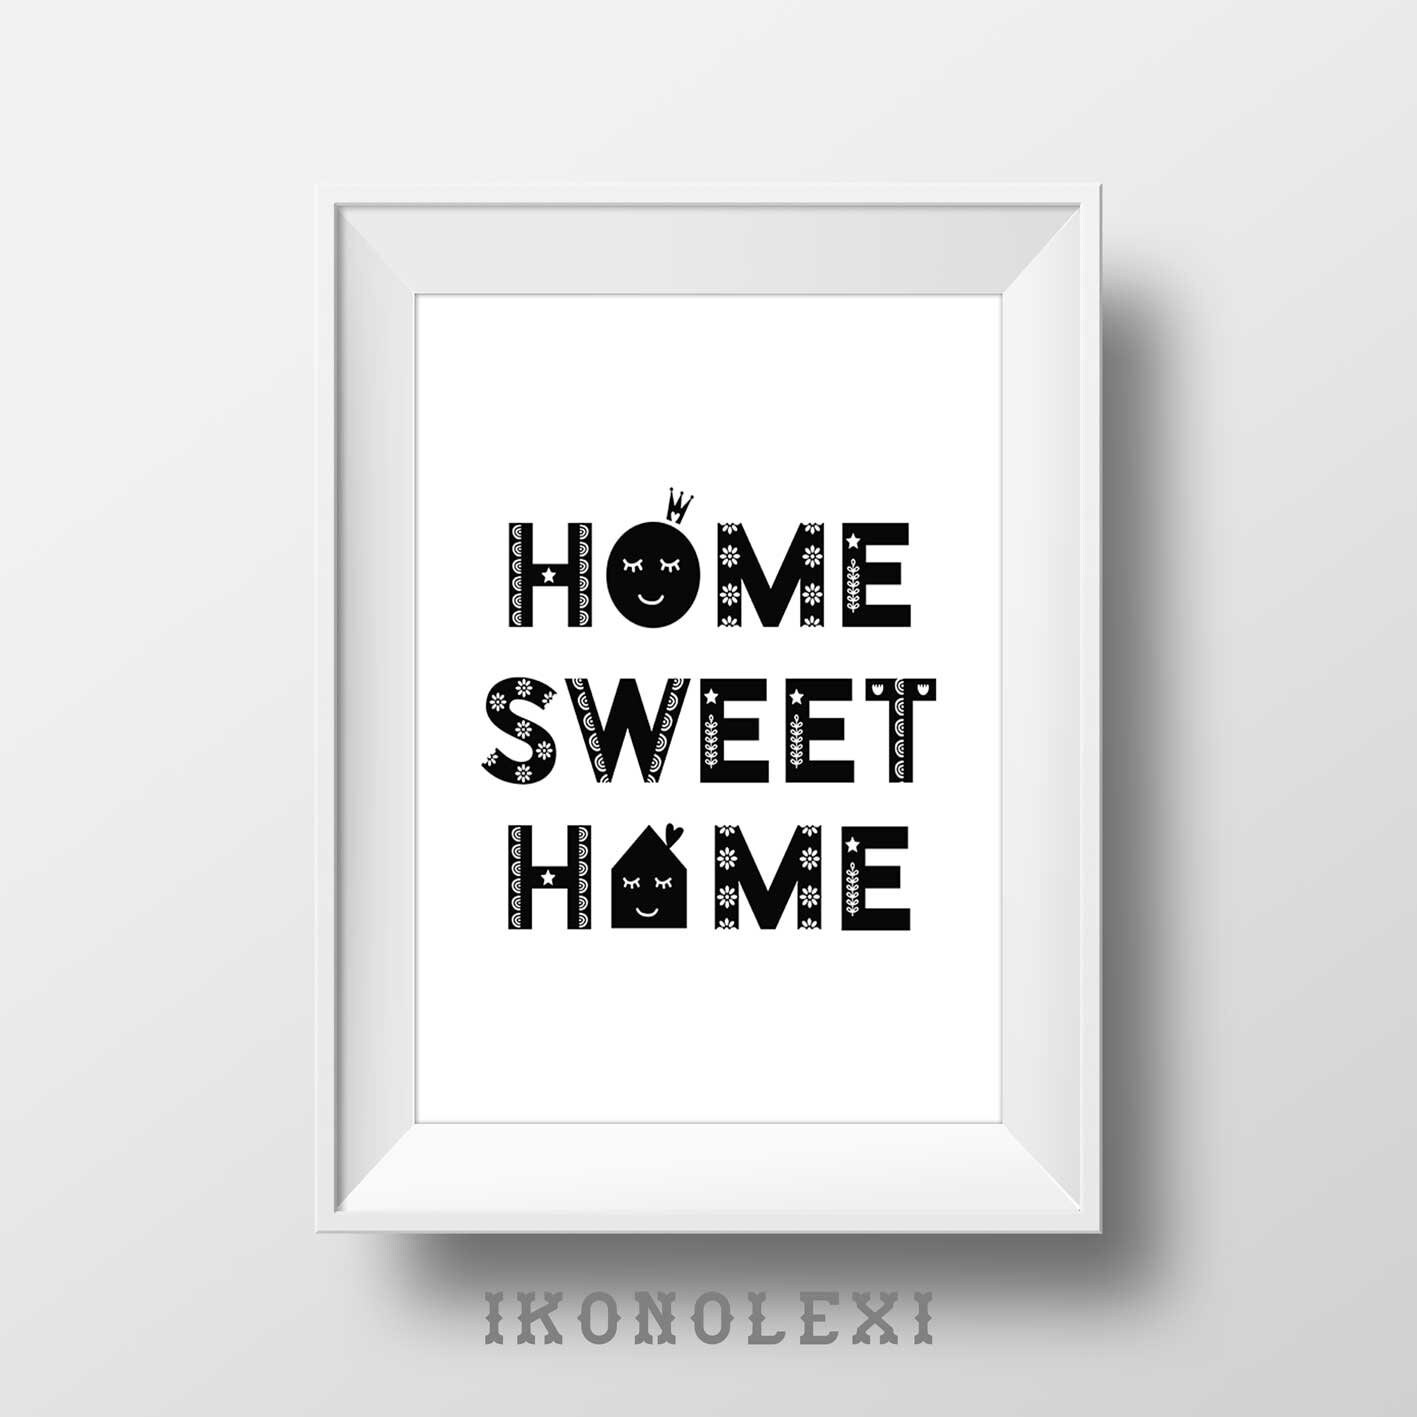 Affiche Scandinave Home Home Sweet Home Wall Prints Kitchen Decor Typography Poster Sweet Home Minimalist Art Hygge Affiche Scandinave Housewarming Gifts